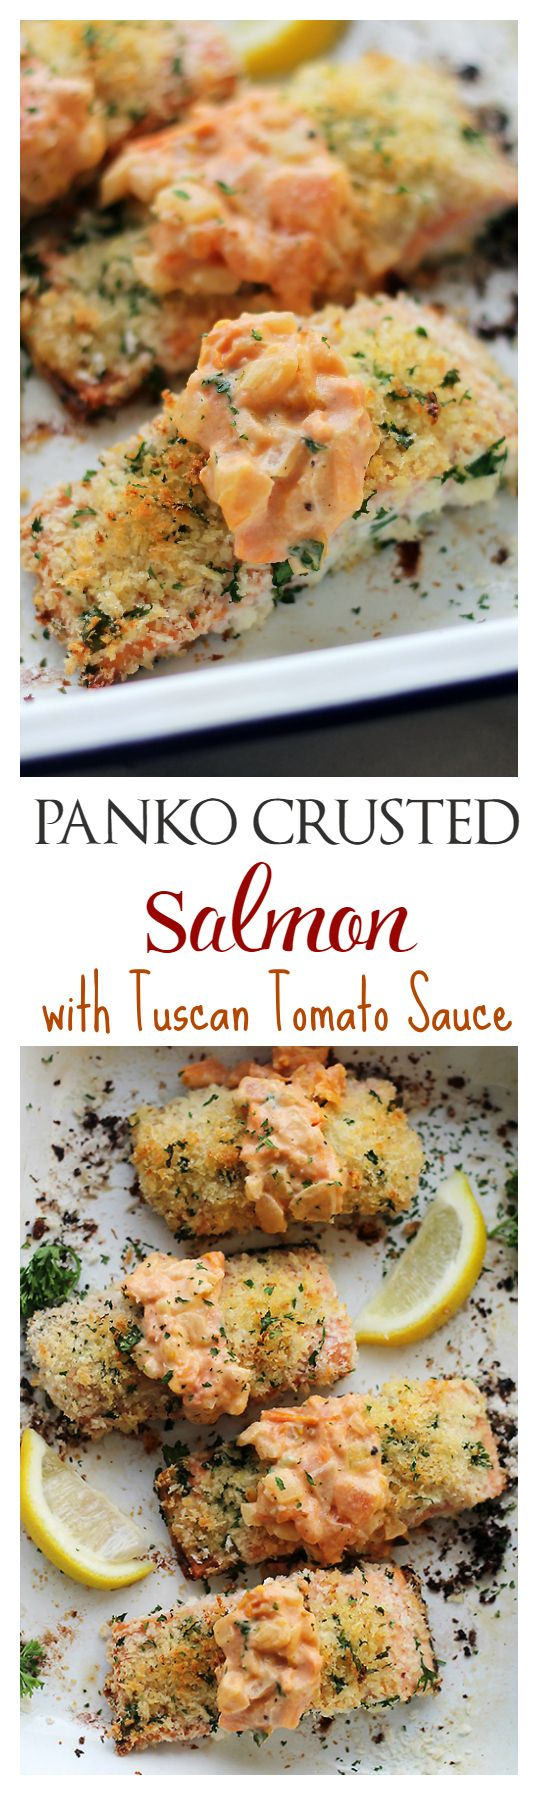 Panko-Crusted Salmon with Tuscan Tomato Sauce - Baked Salmon Fillets breaded with panko crumbs and served with the most luxurious, easy to make Tuscan Tomato Sauce. This stuff is incredible! Get the recipe on diethood.com